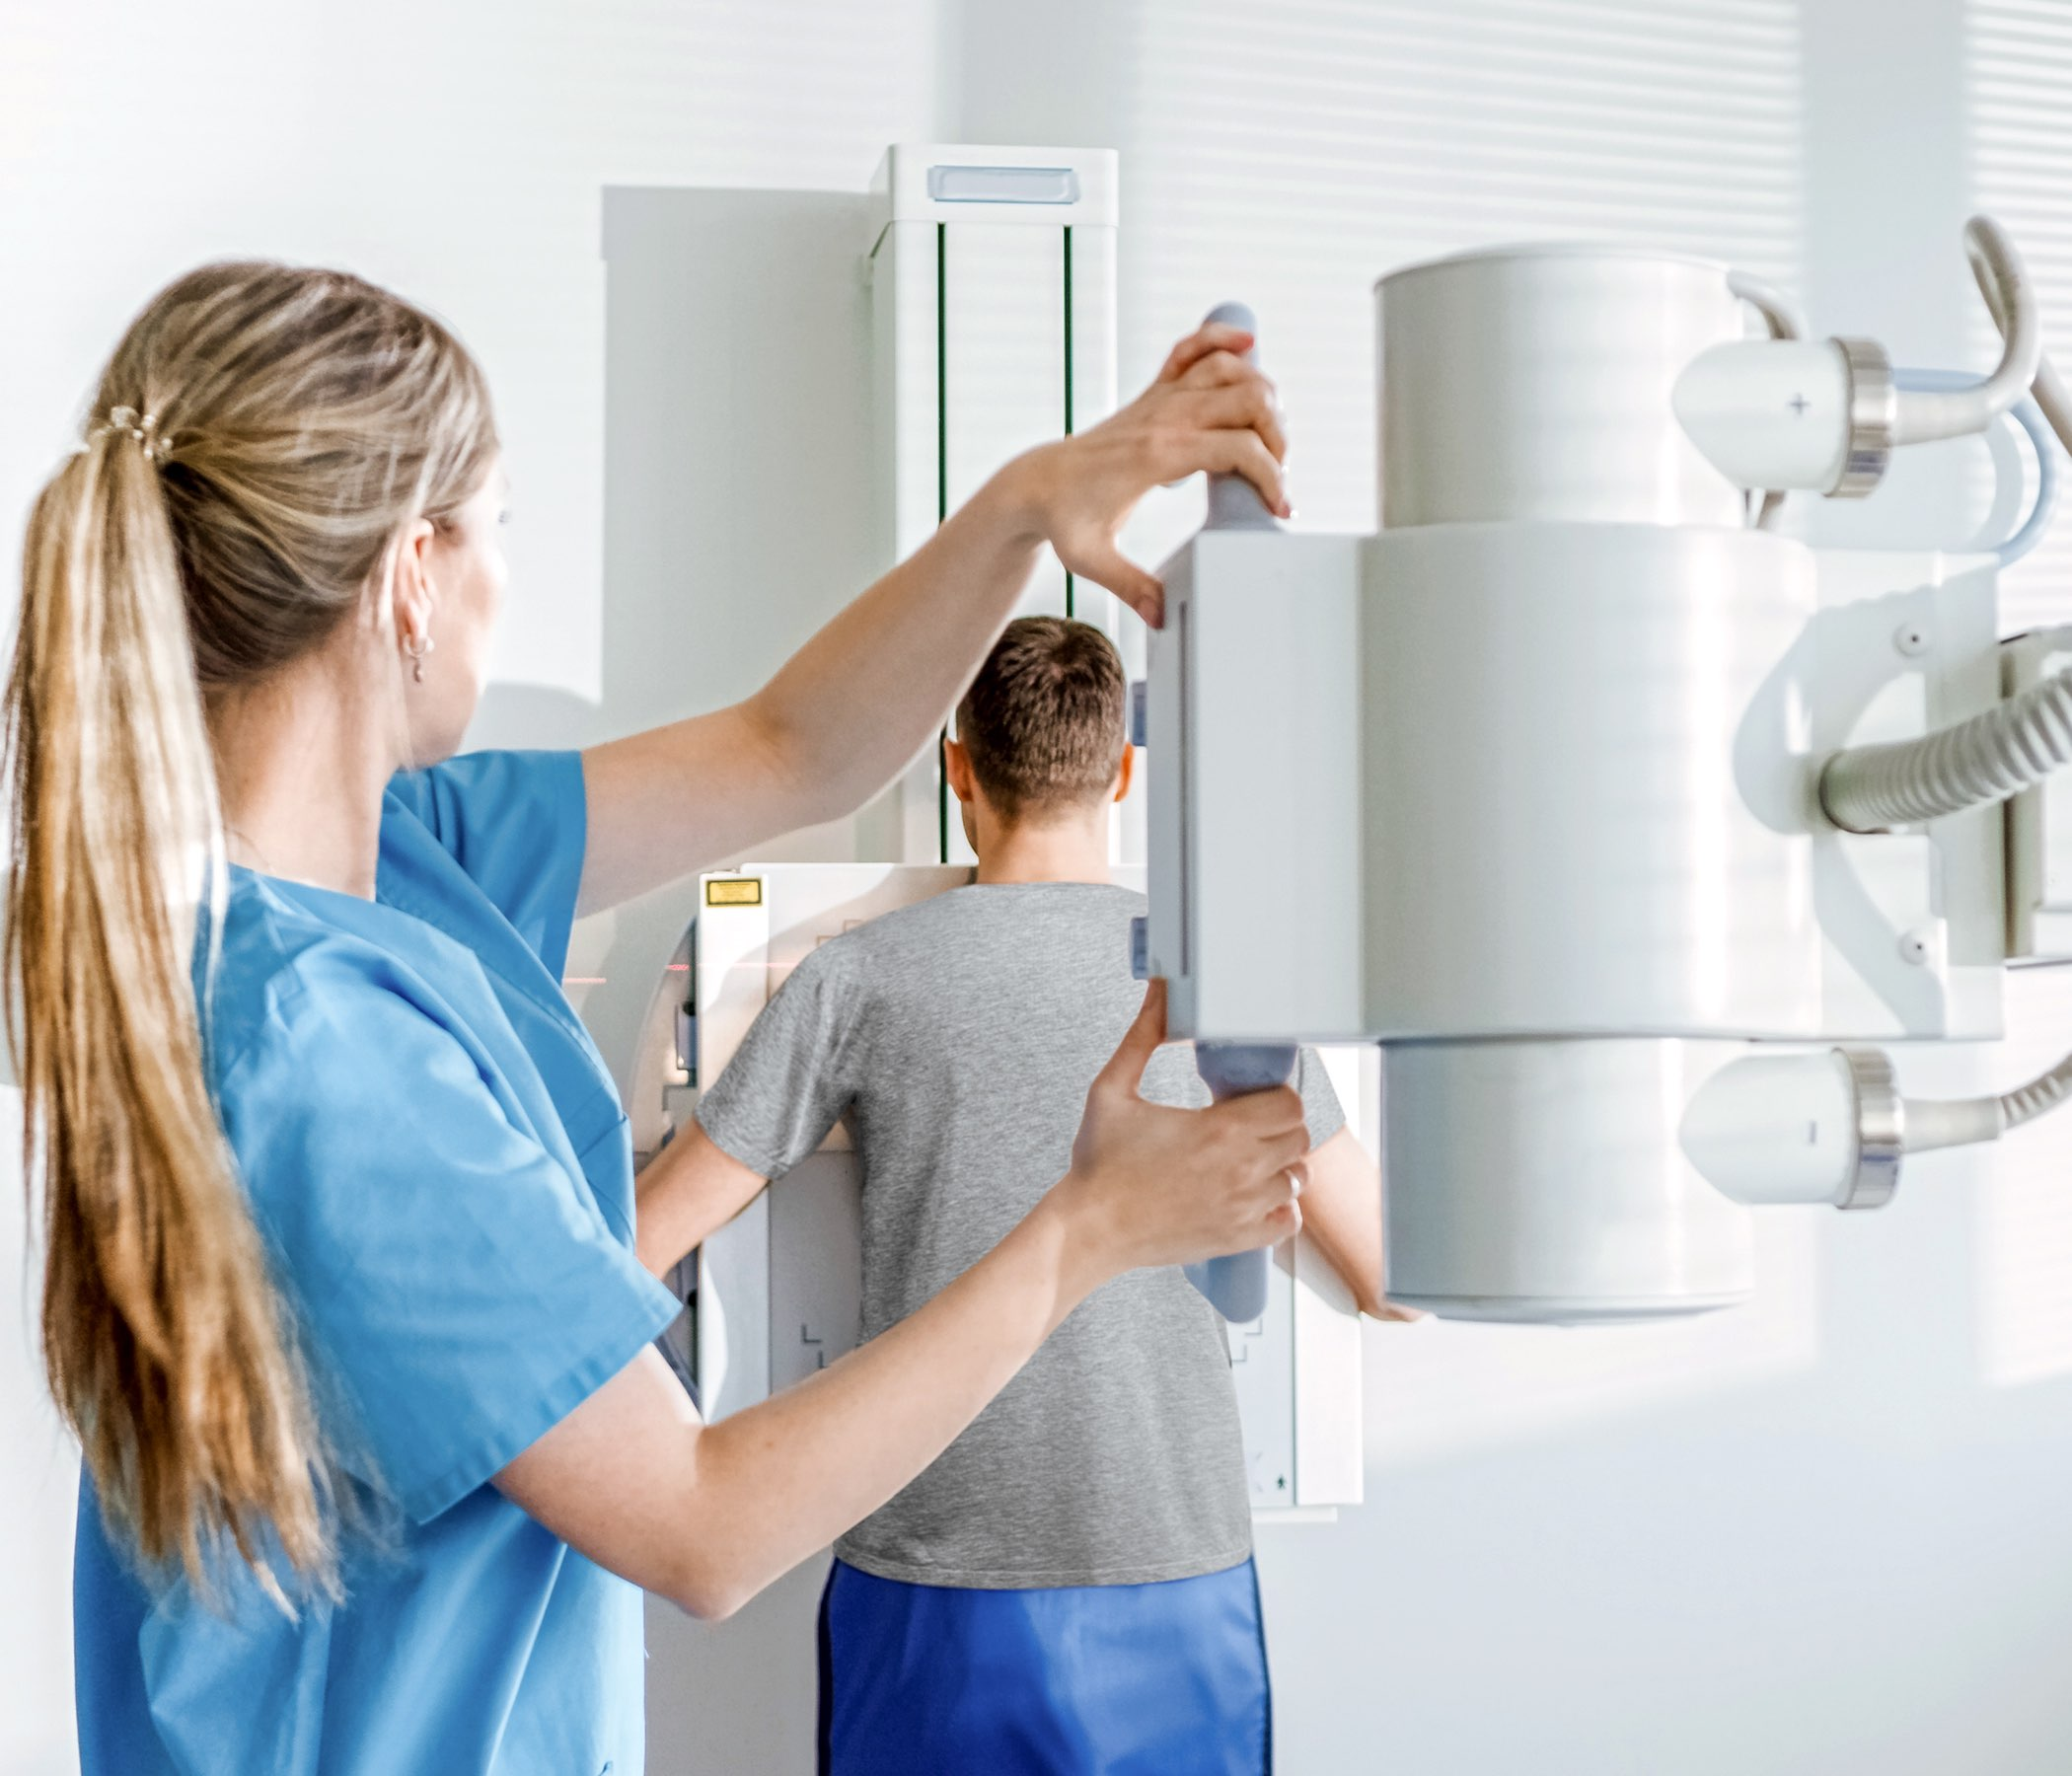 Man Standing Face Against the Wall While Medical Technician Adjusts X-Ray Machine For Scanning